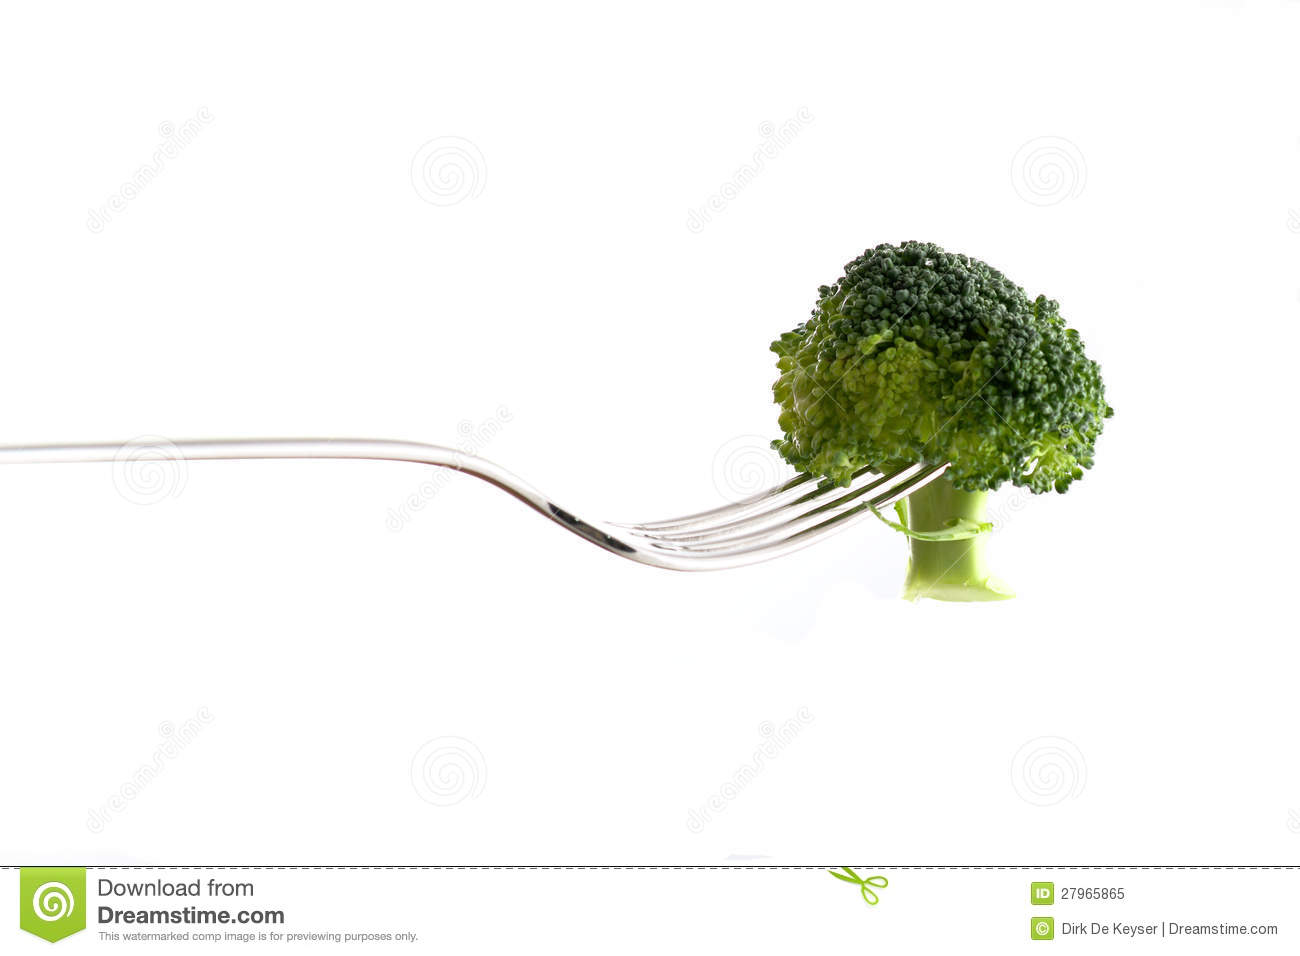 Broccoli on a silver fork